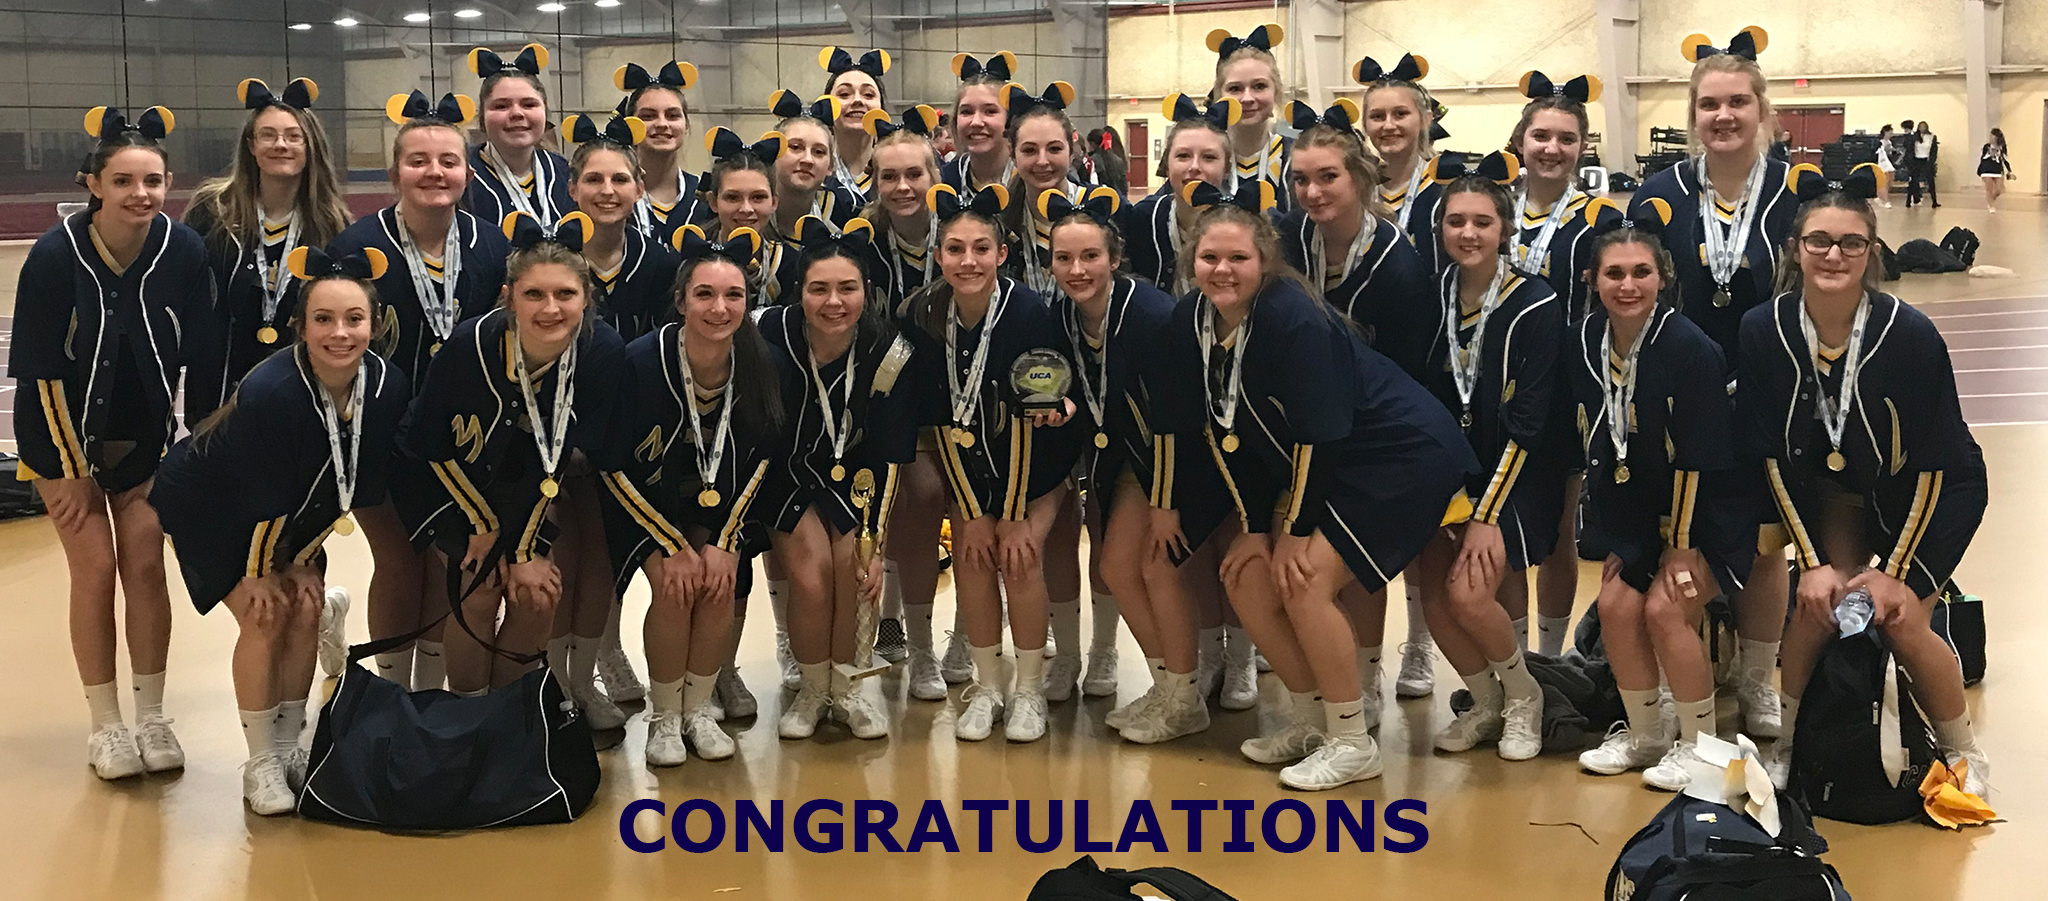 Cheer Qualifies for Nationals at Disney